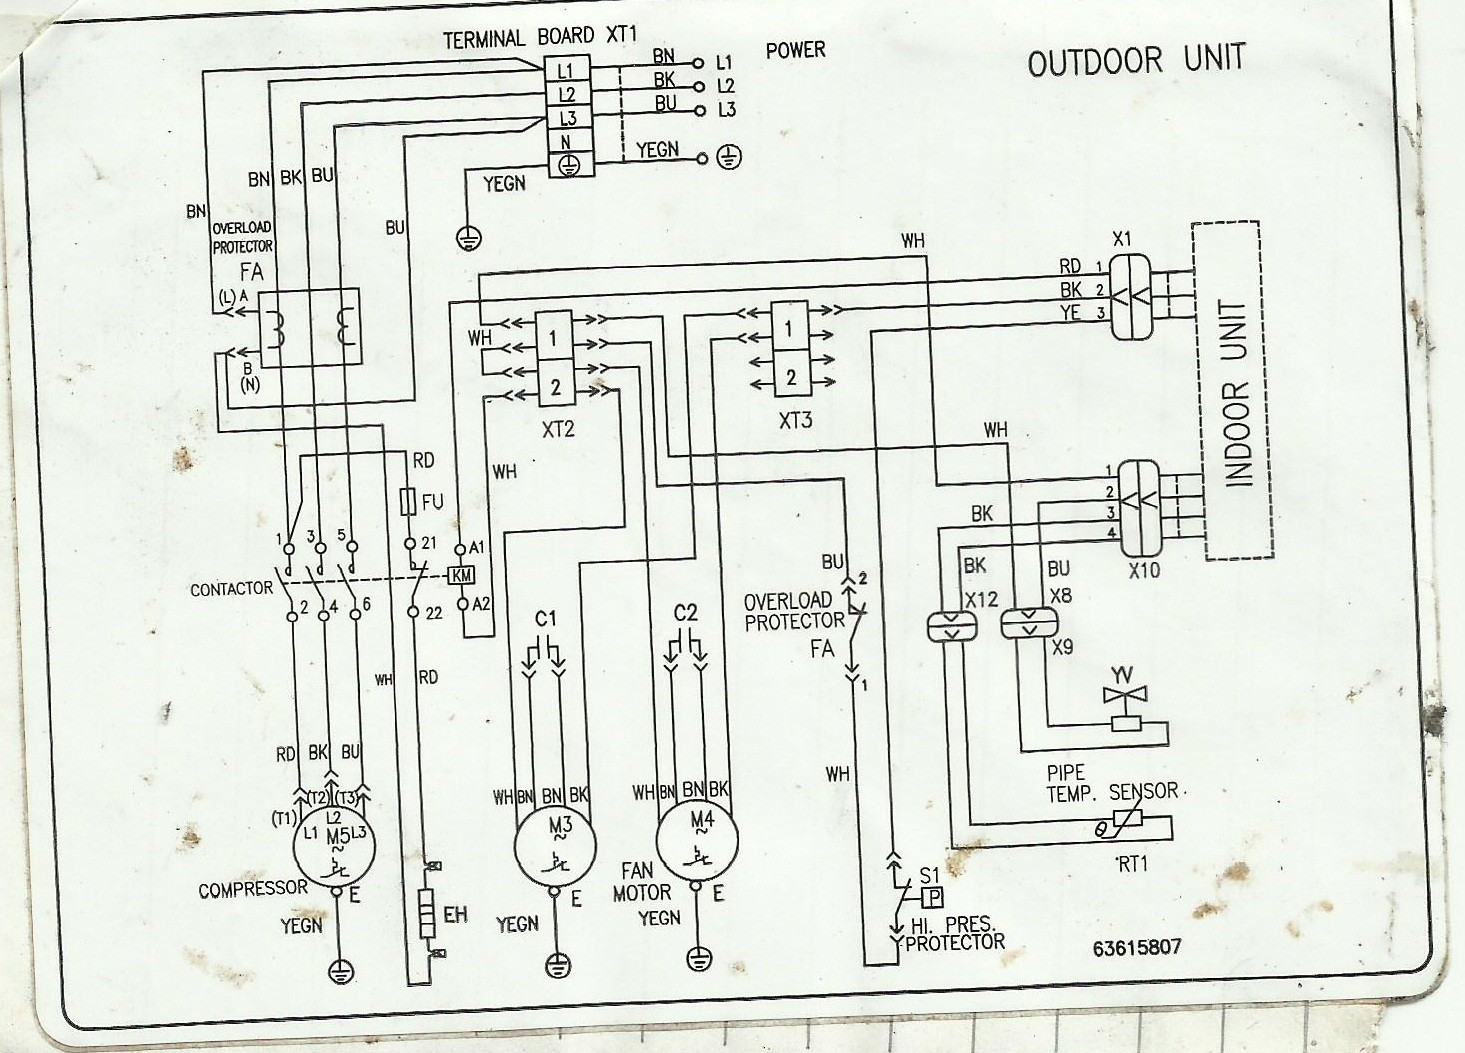 air conditioner wiring diagram for dummies wz 2055  csr wiring ac wiring diagram of window airconditioner  ac wiring diagram of window airconditioner